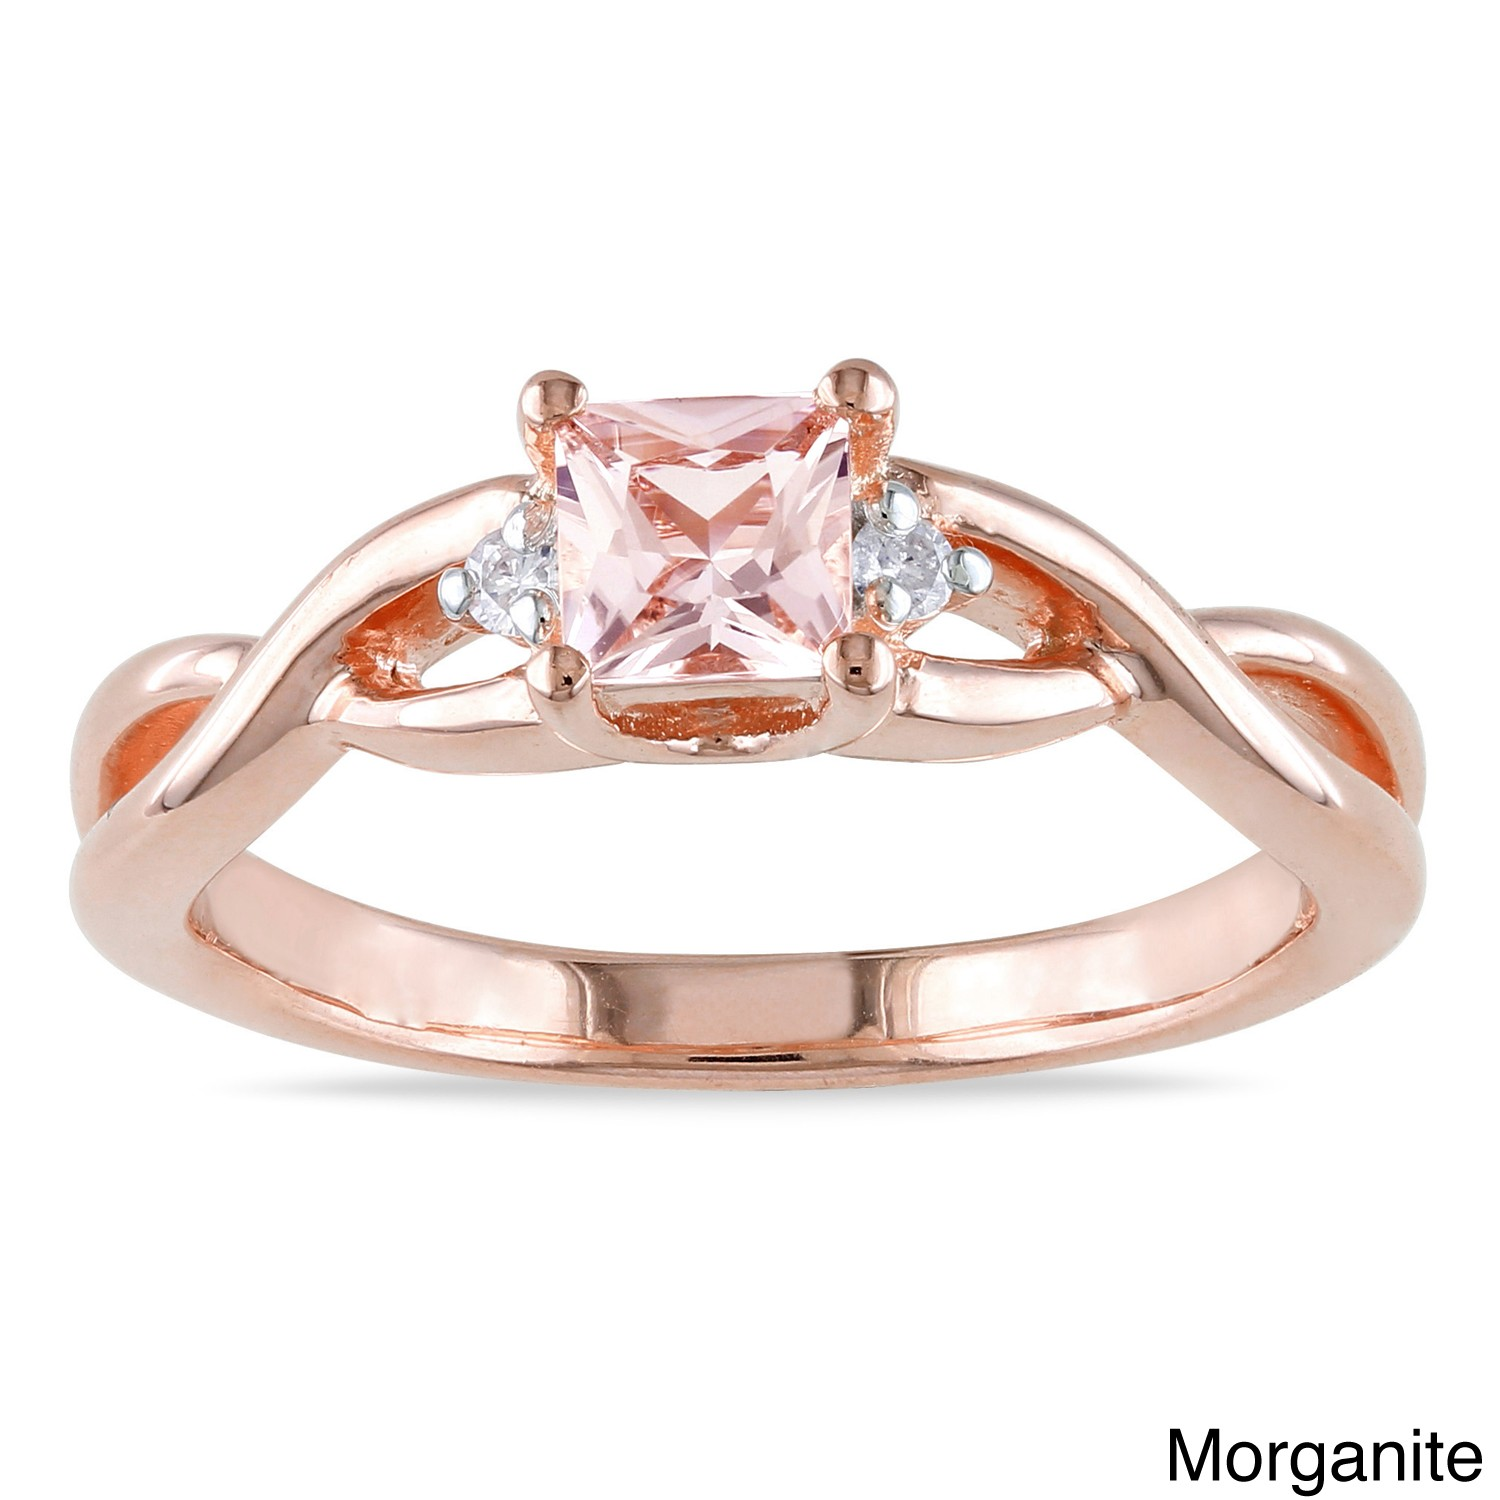 number diamond and ring cherished twist rings d webstore h gold samuel rose product solitaire